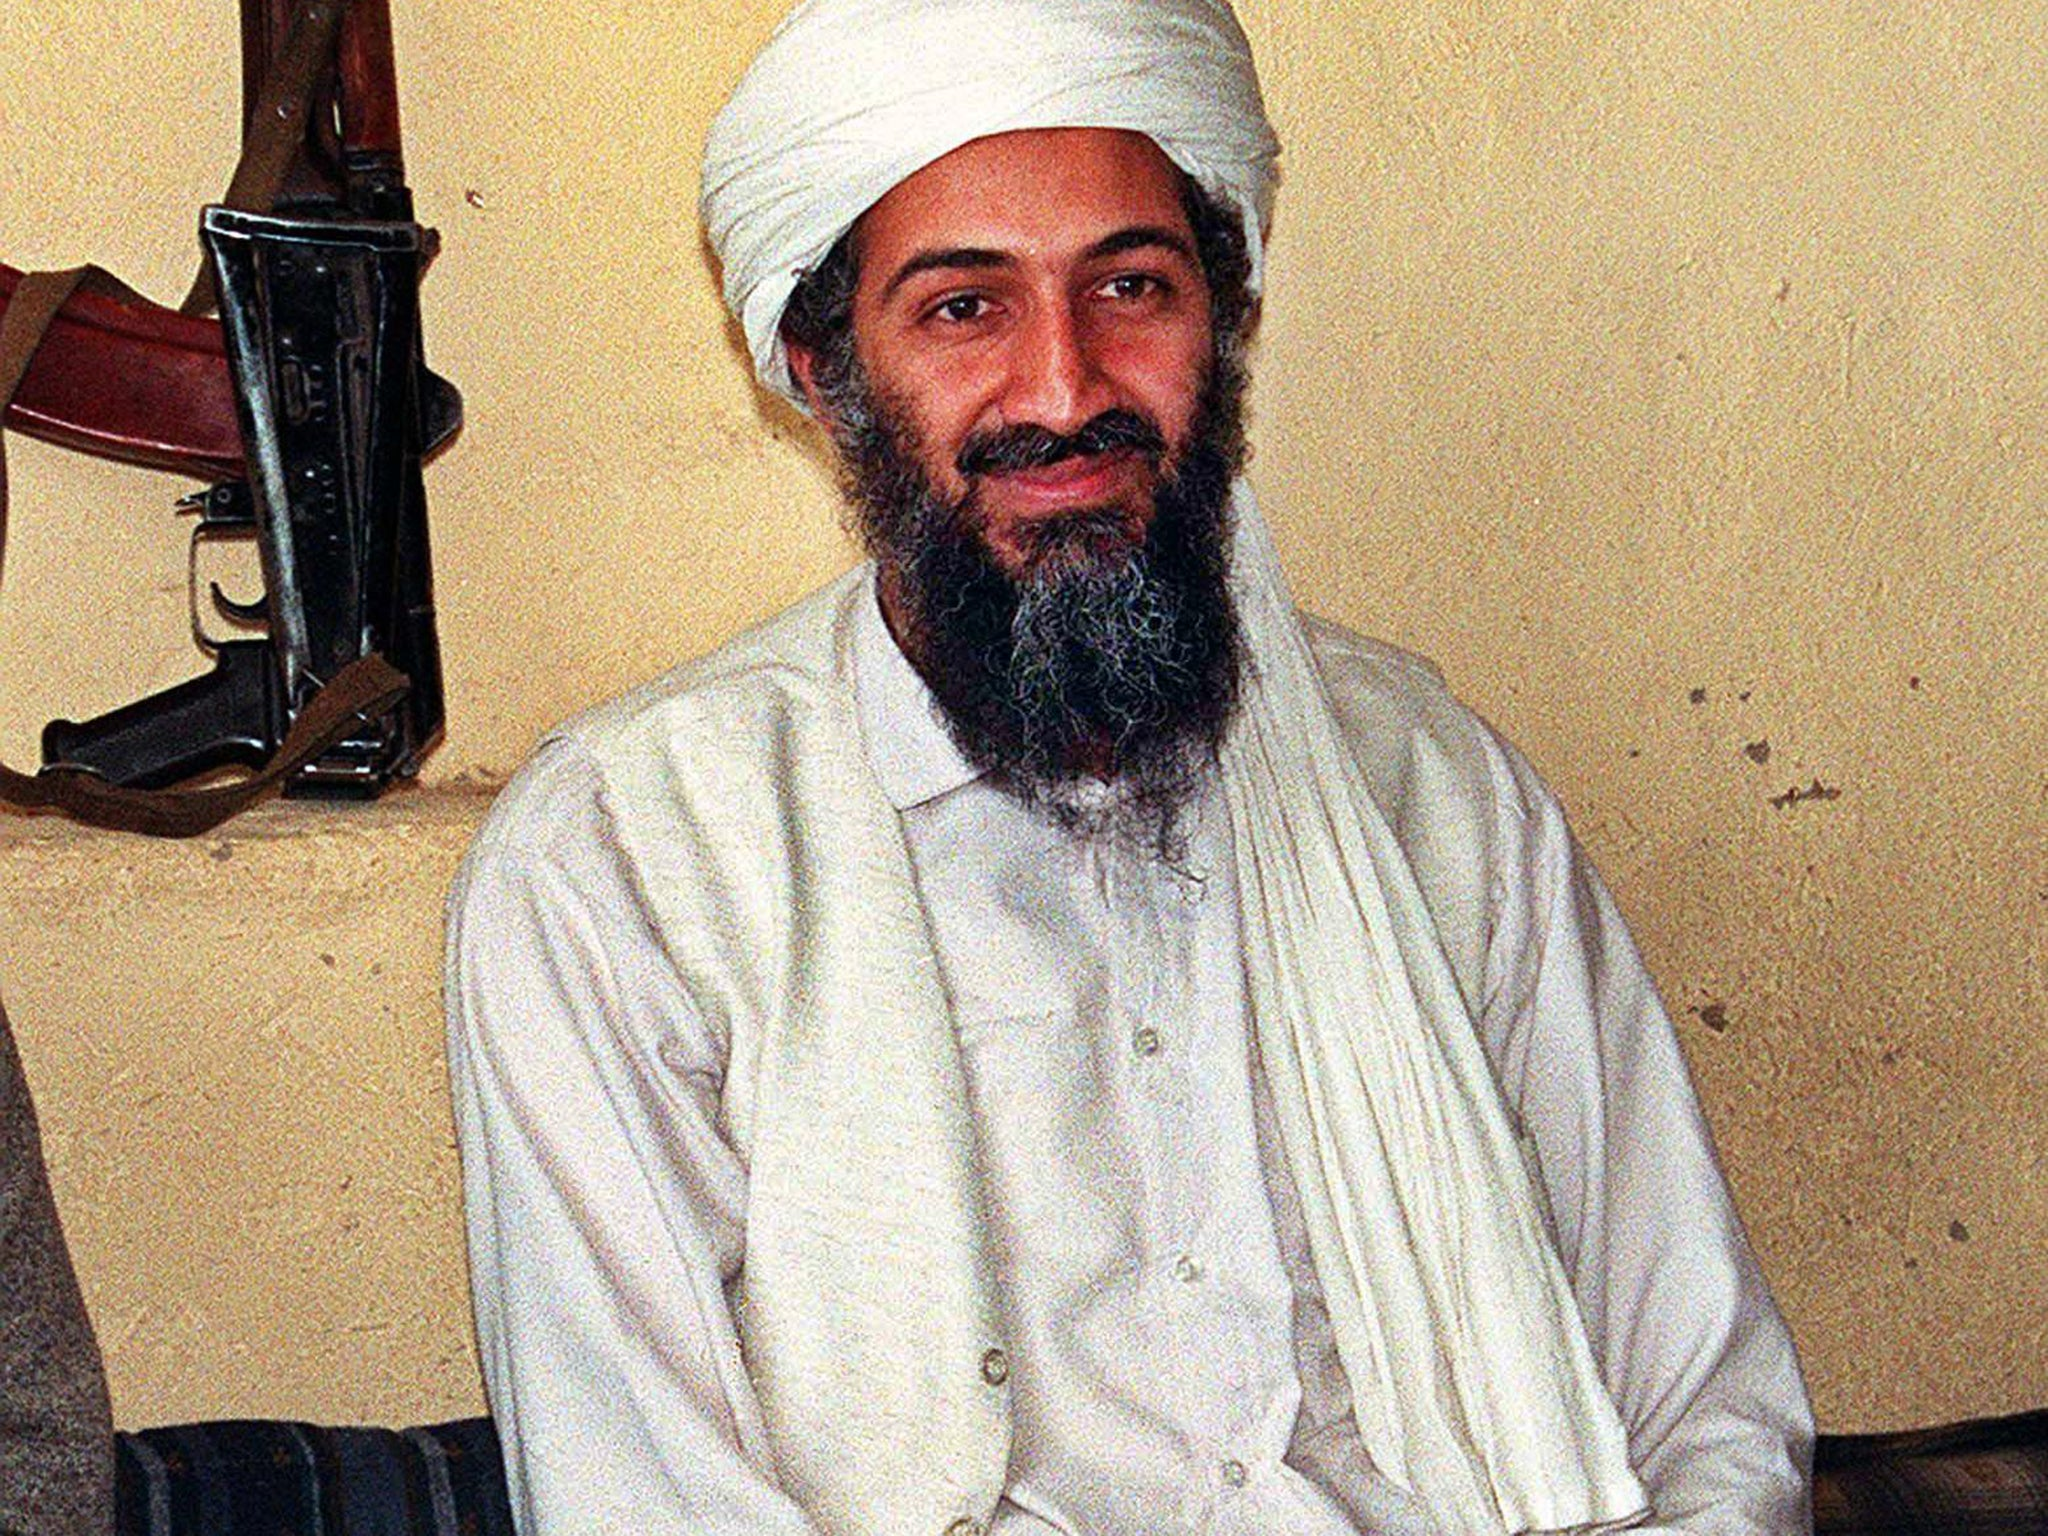 the death of osama bin laden was a tragedy